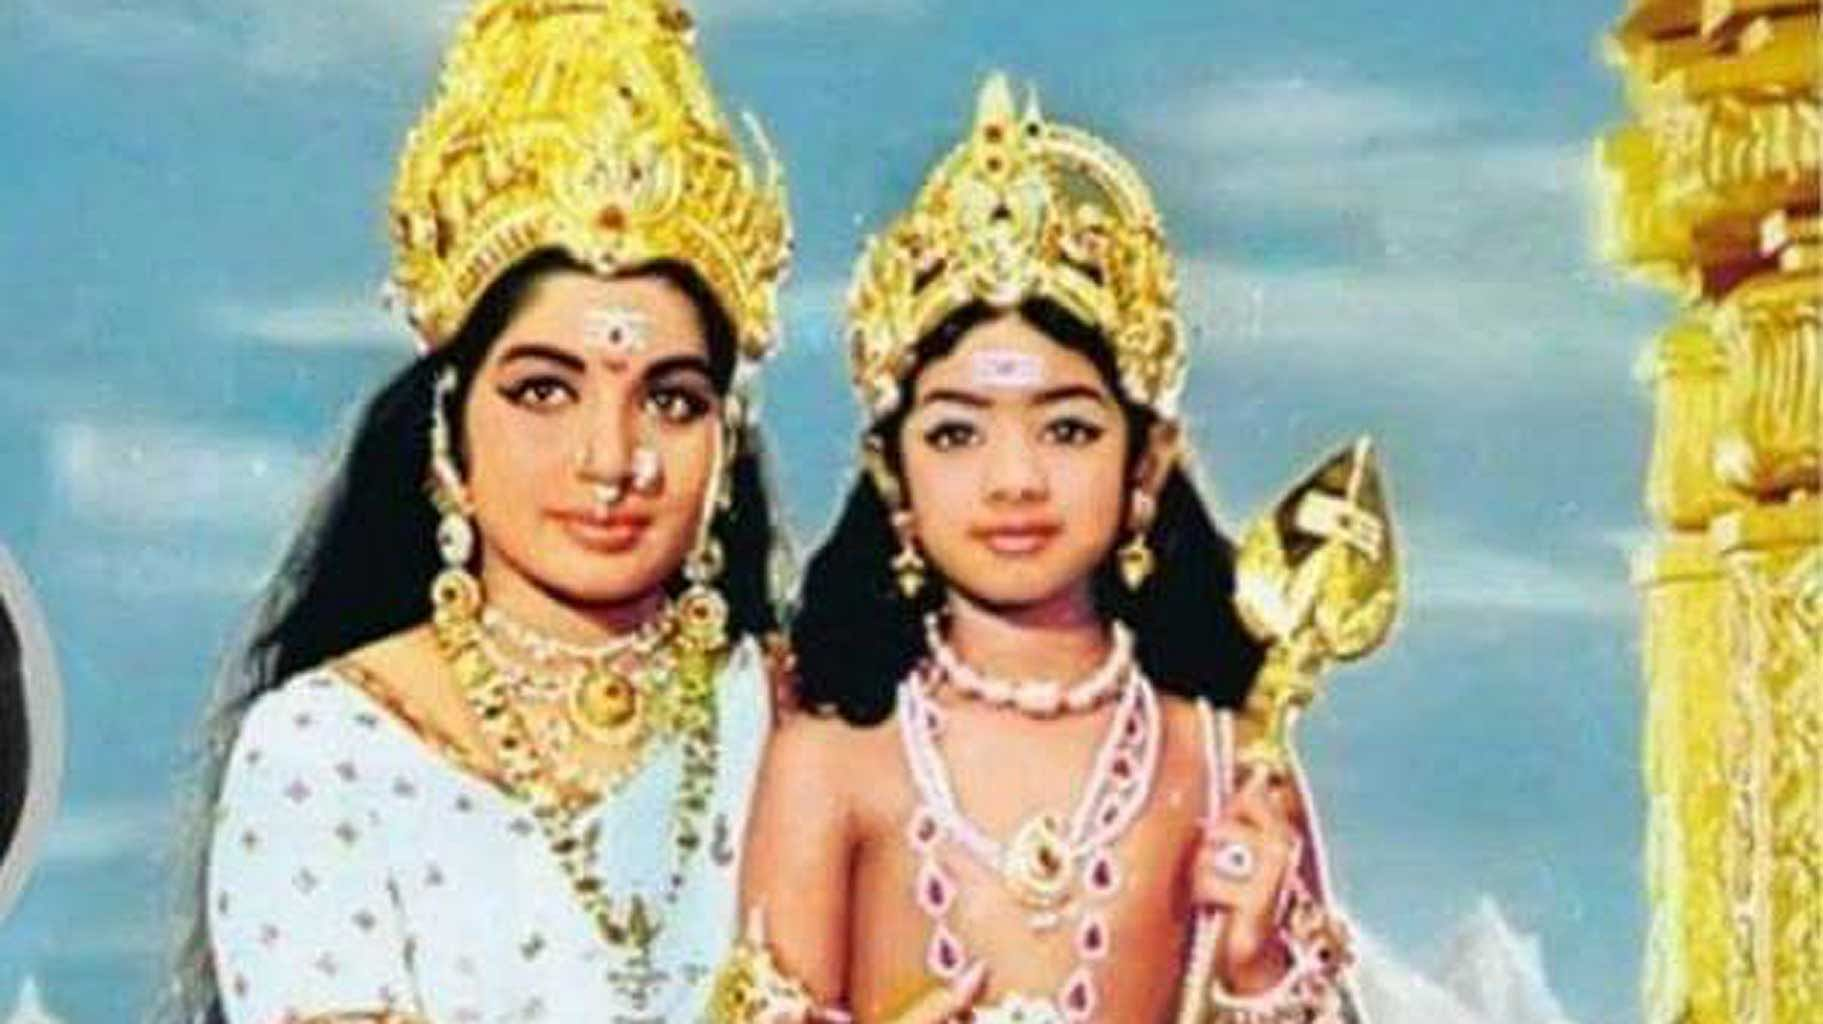 Sridevi Dies at 54 of Cardiac Arrest; Here are Photos of Her as a Child  Artist and Teen Star